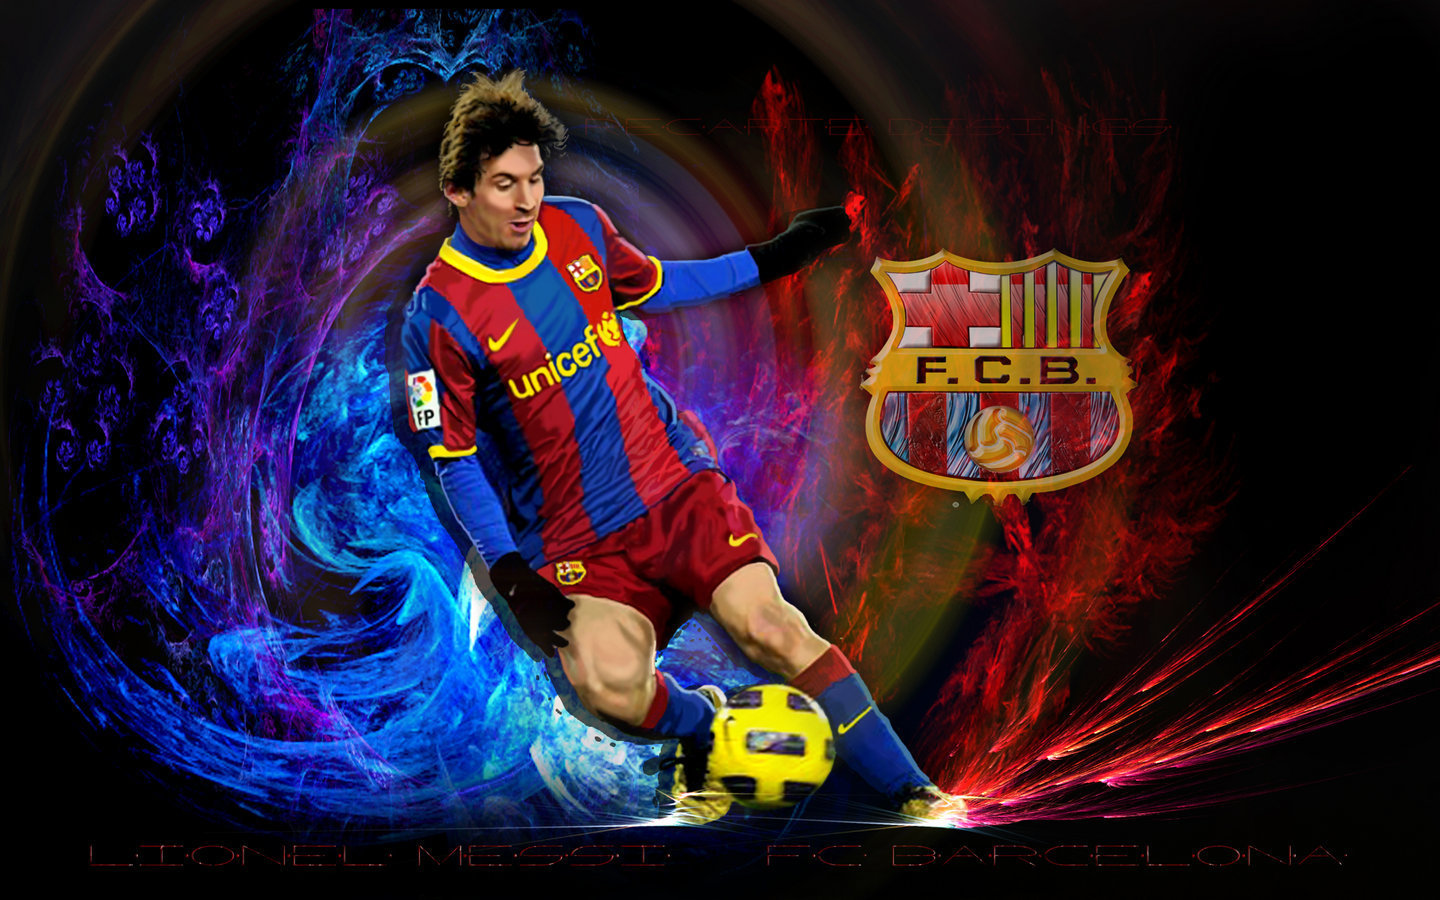 Lionel Messi FC Barcelona Wallpaper   Lionel Andres Messi Wallpaper 1440x900